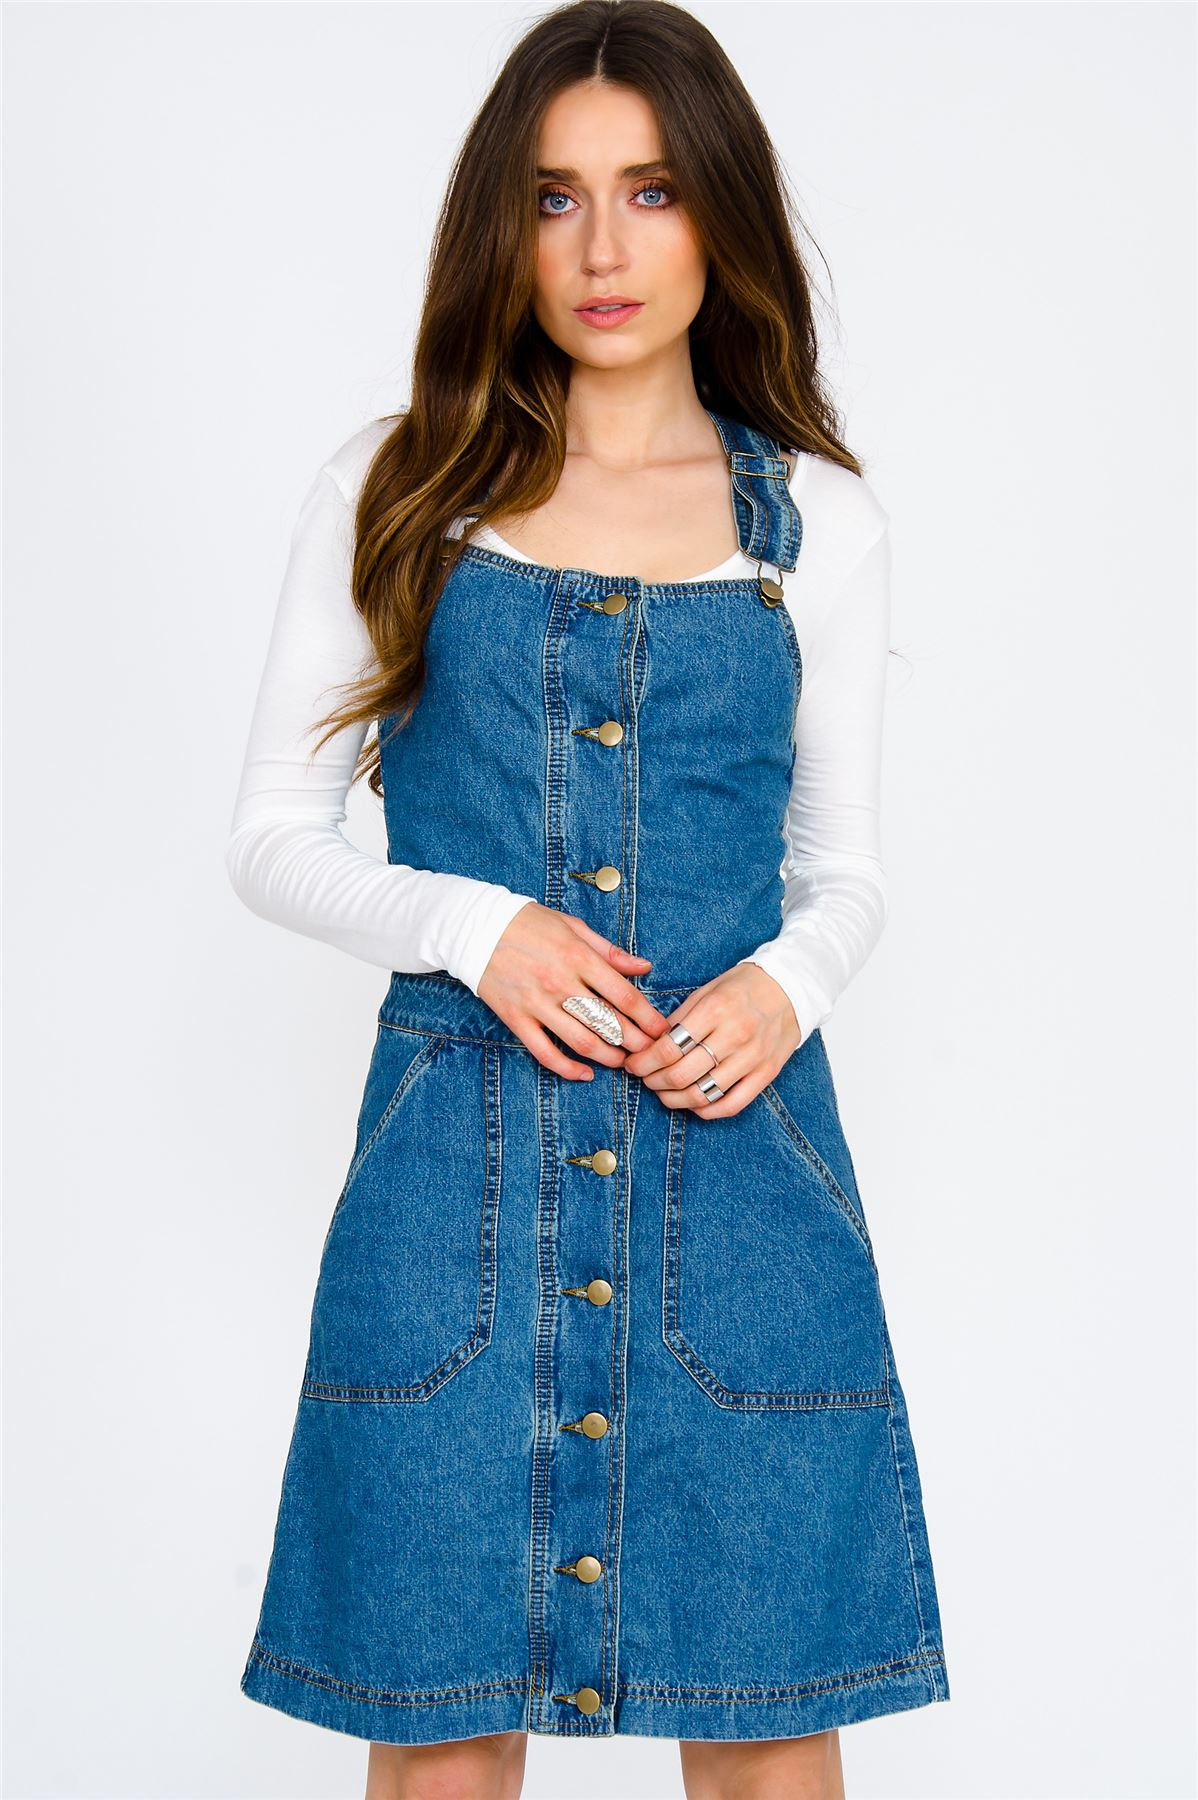 Womens Denim Dungarees Plus Size Long Baggy Fit Bib and Braces Fashion Overall See more like this. Womens Dungaree Dress Ripped Denim Skirt Dungarees Size 6 8 10 12 14 Denim Blue. Brand New. $ to $ From United Kingdom. Buy It Now +$ shipping. 6+ Watching.